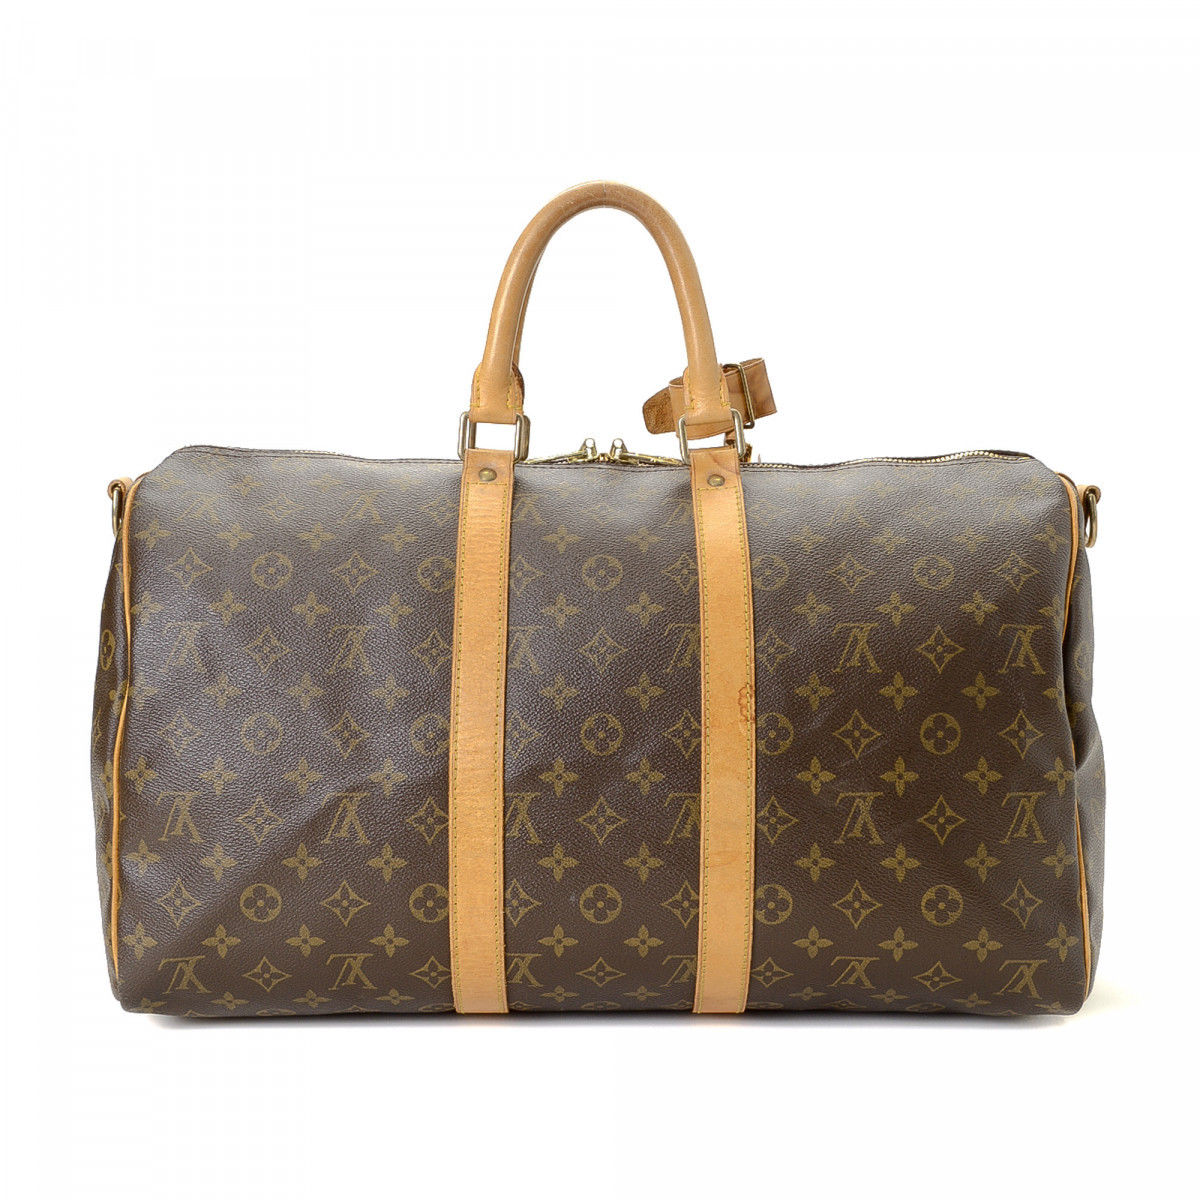 befe569fb529 Used Louis Vuitton Bags Toronto | Stanford Center for Opportunity ...